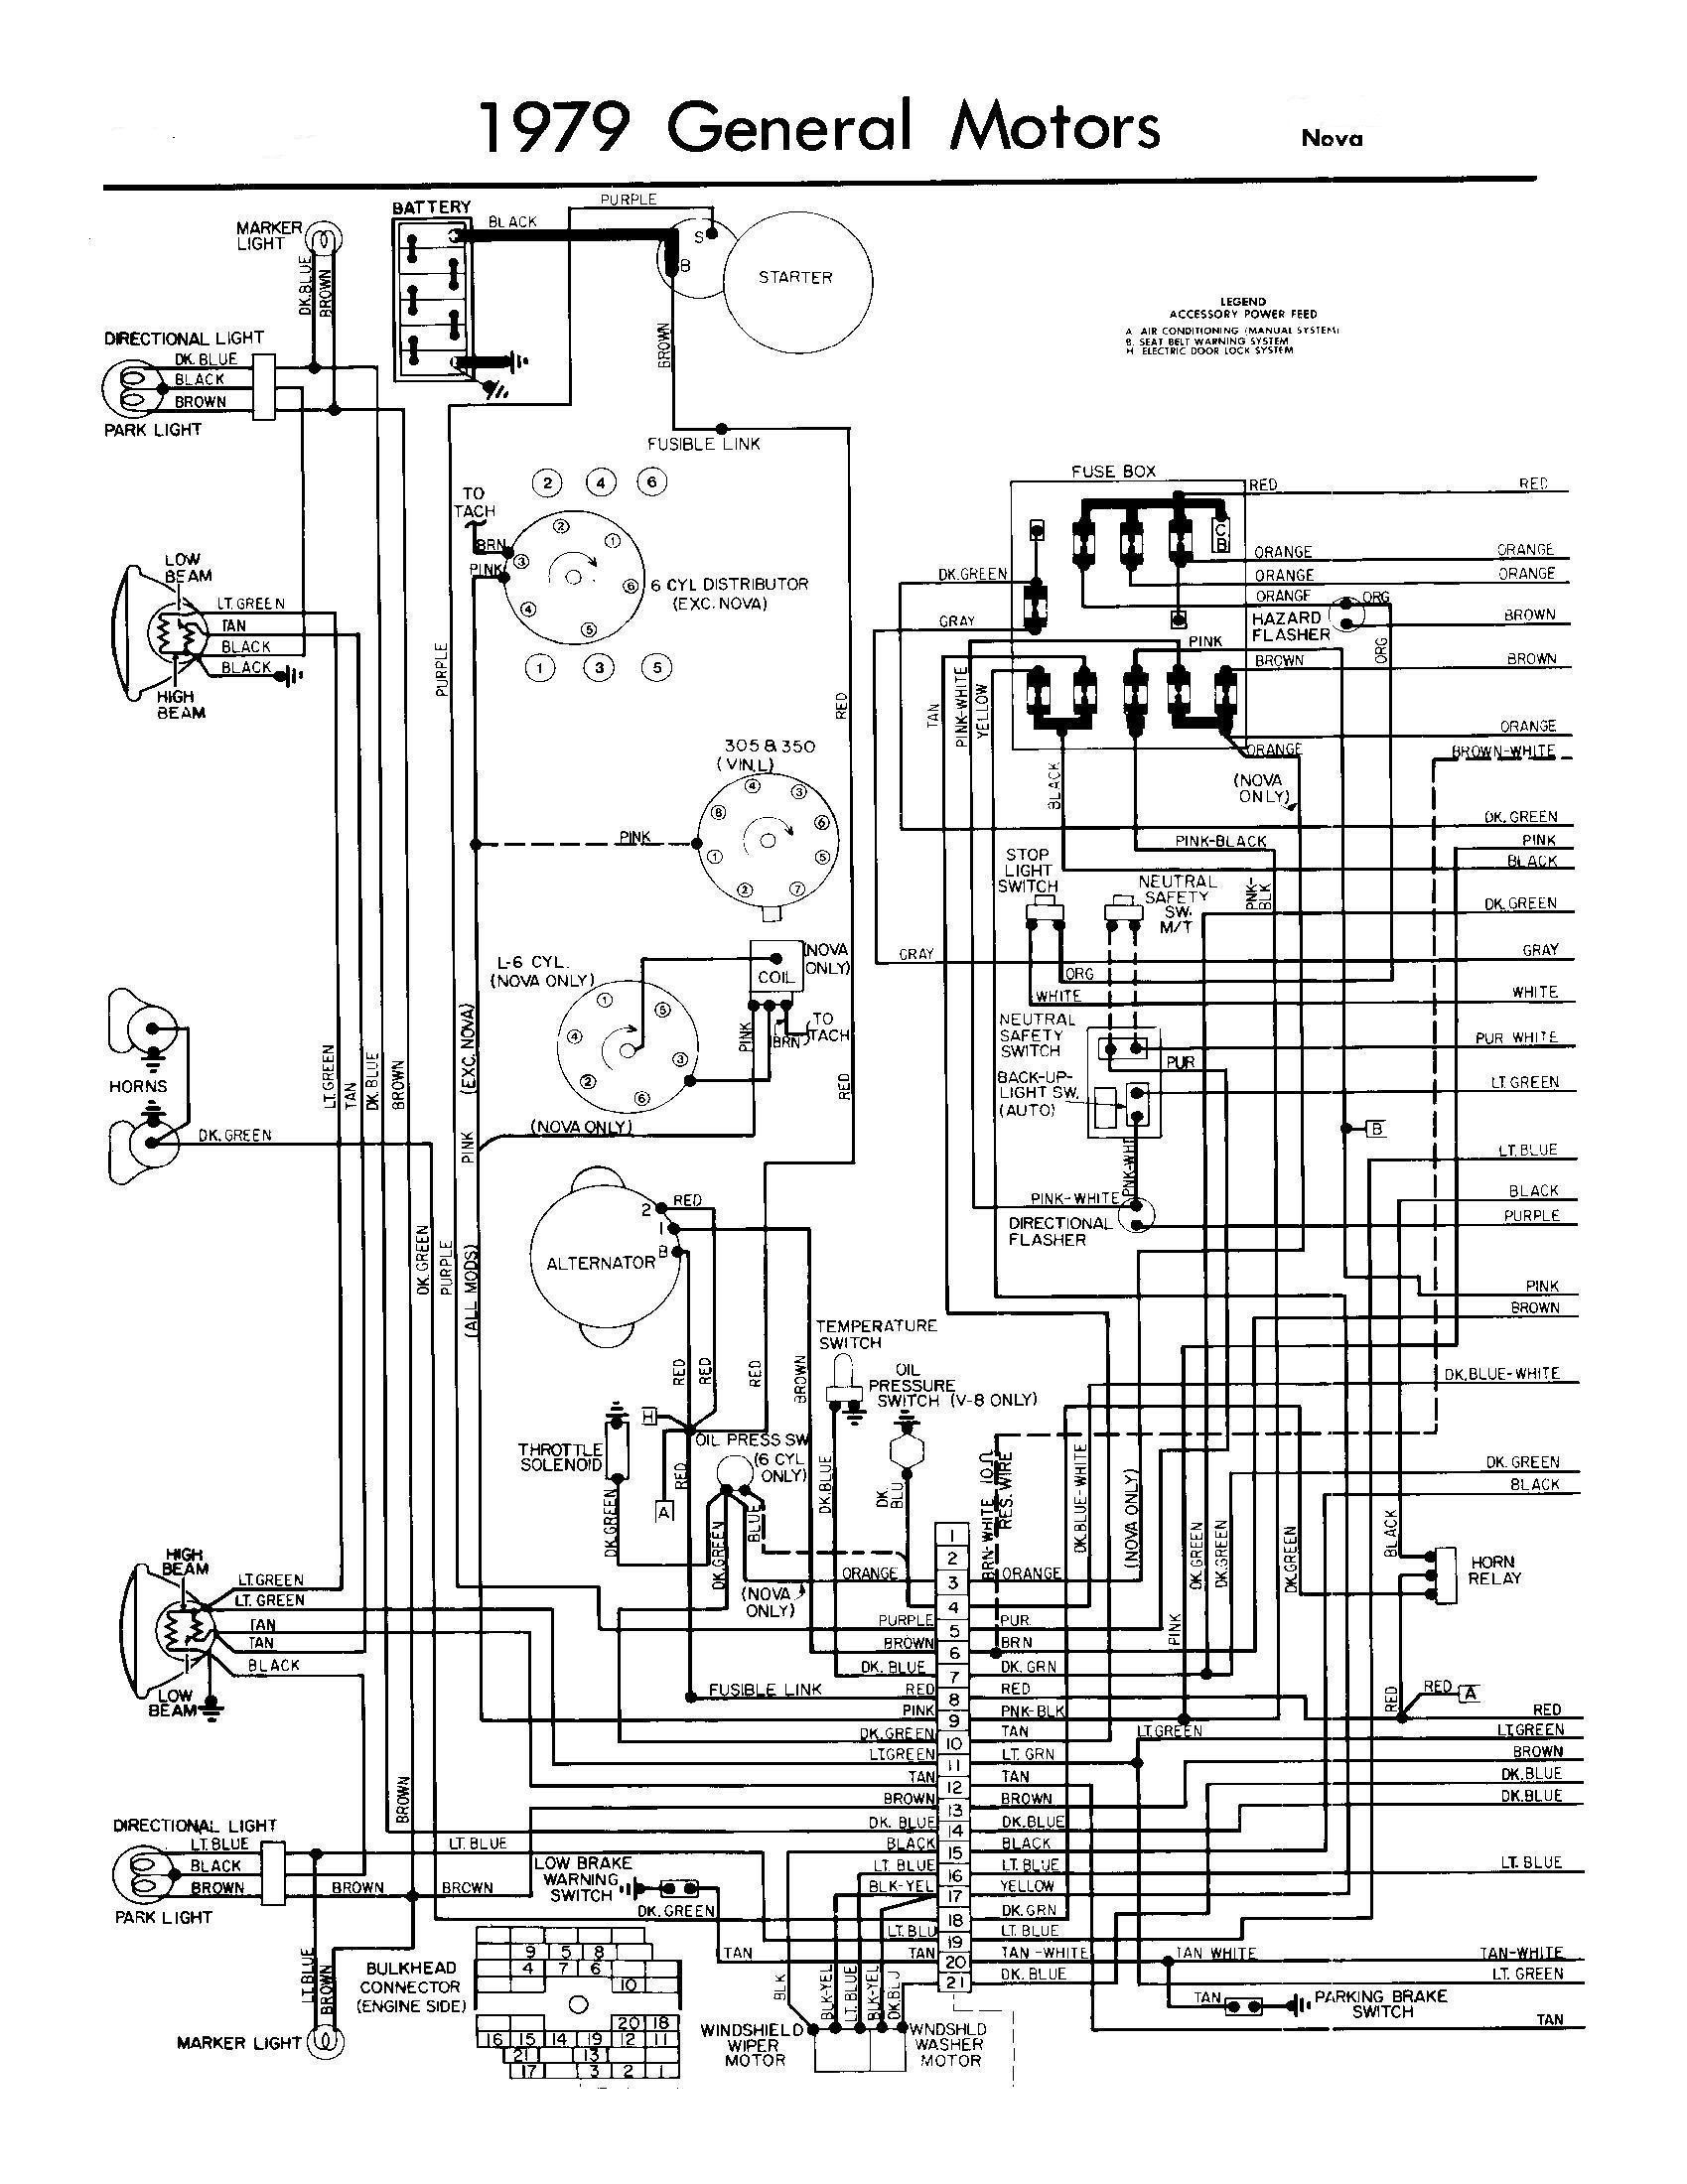 Man Trap Wiring Diagram Free Download Schematic Mars 10464 Nova Fuse Box Diagrams Rh Ogmconsulting Co